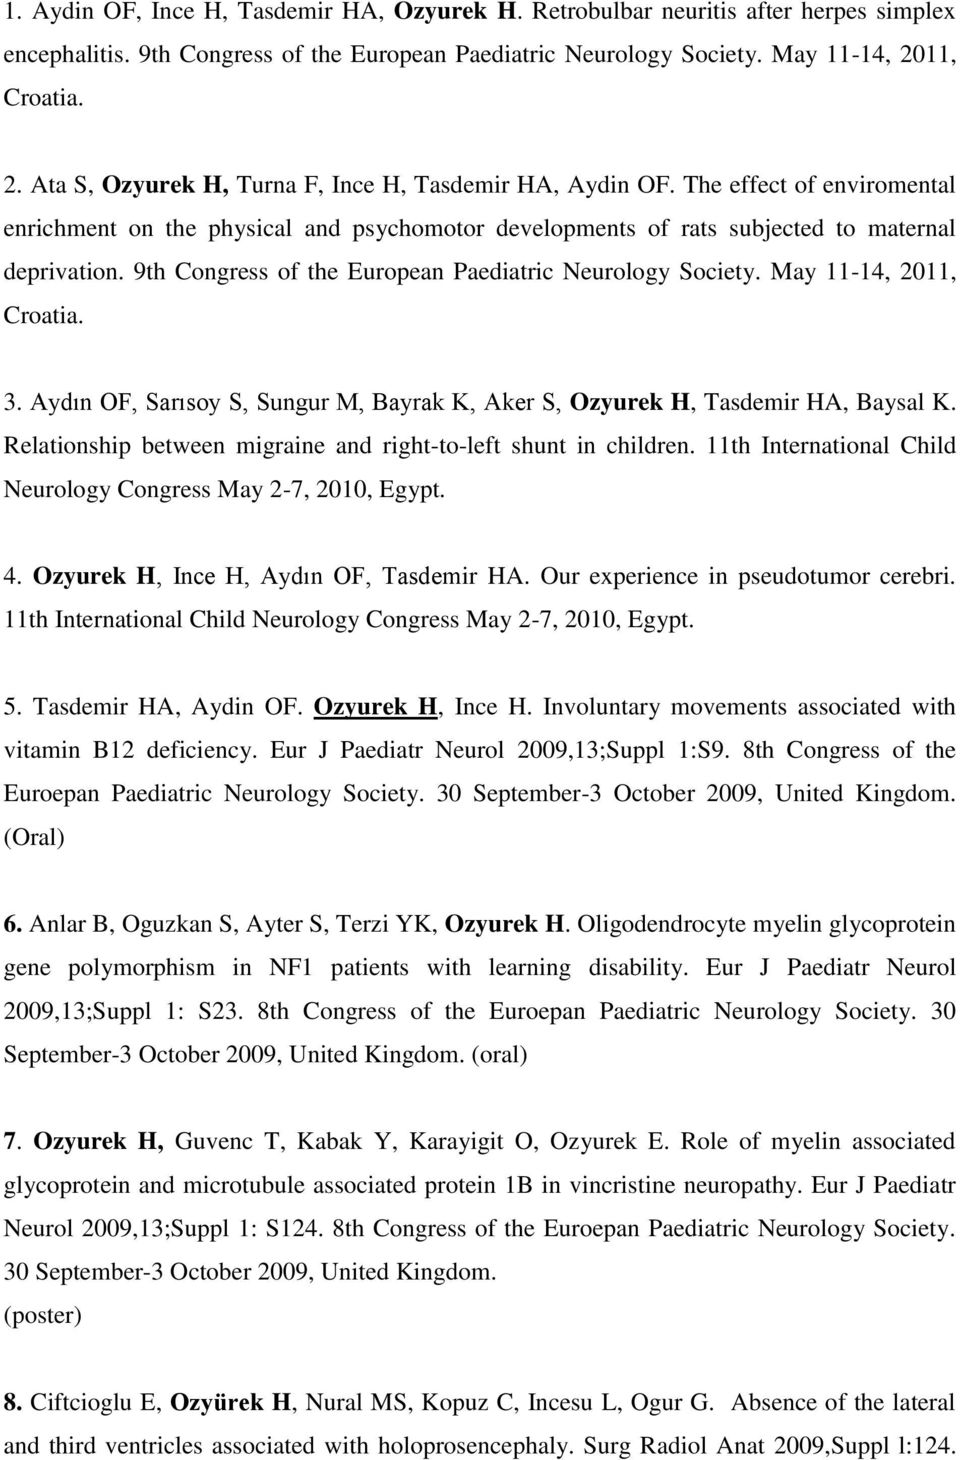 9th Congress of the European Paediatric Neurology Society. May 11-14, 2011, Croatia. 3. Aydın OF, Sarısoy S, Sungur M, Bayrak K, Aker S, Ozyurek H, Tasdemir HA, Baysal K.